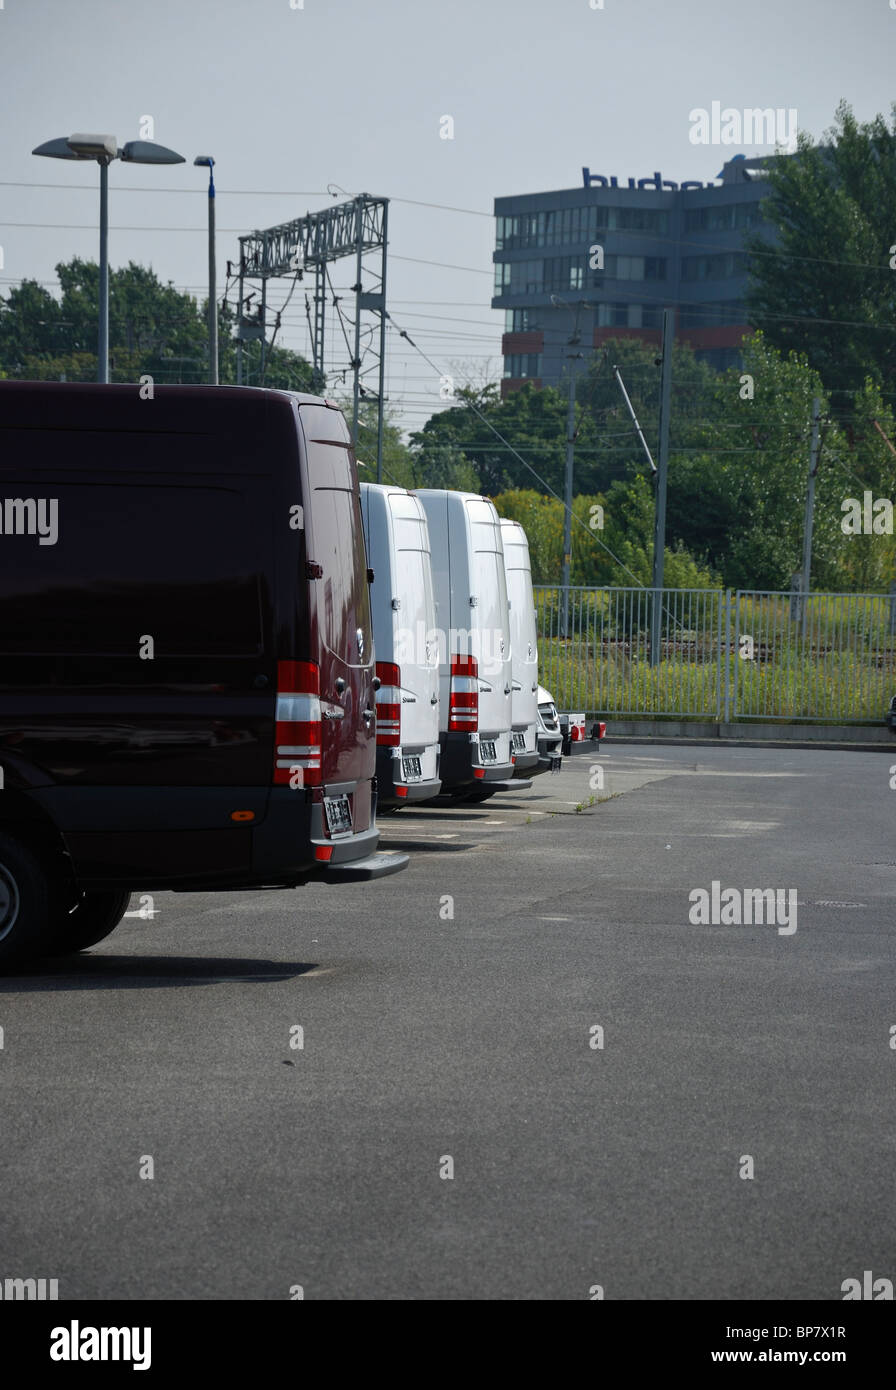 Mercedes-Benz Medium Commercial Vehicles (MCV) for sale in a row - Gottlieb Daimler Street 1 MB's car dealership Stock Photo